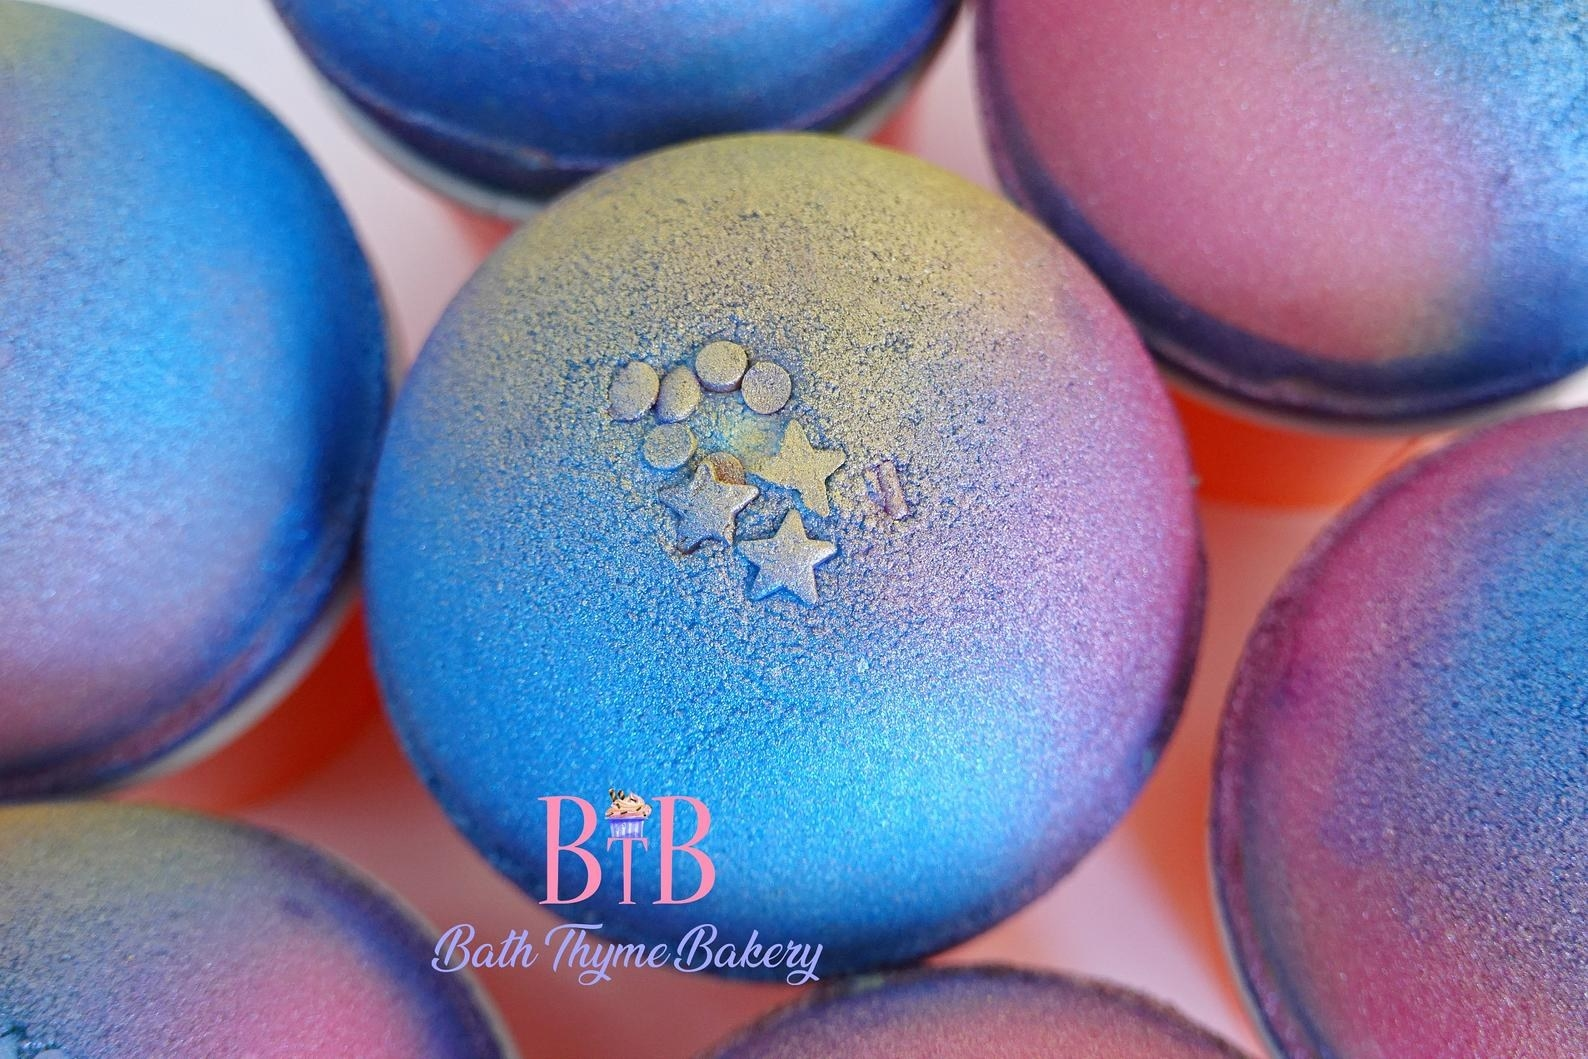 A shimmery blue purple and yellow bath bomb